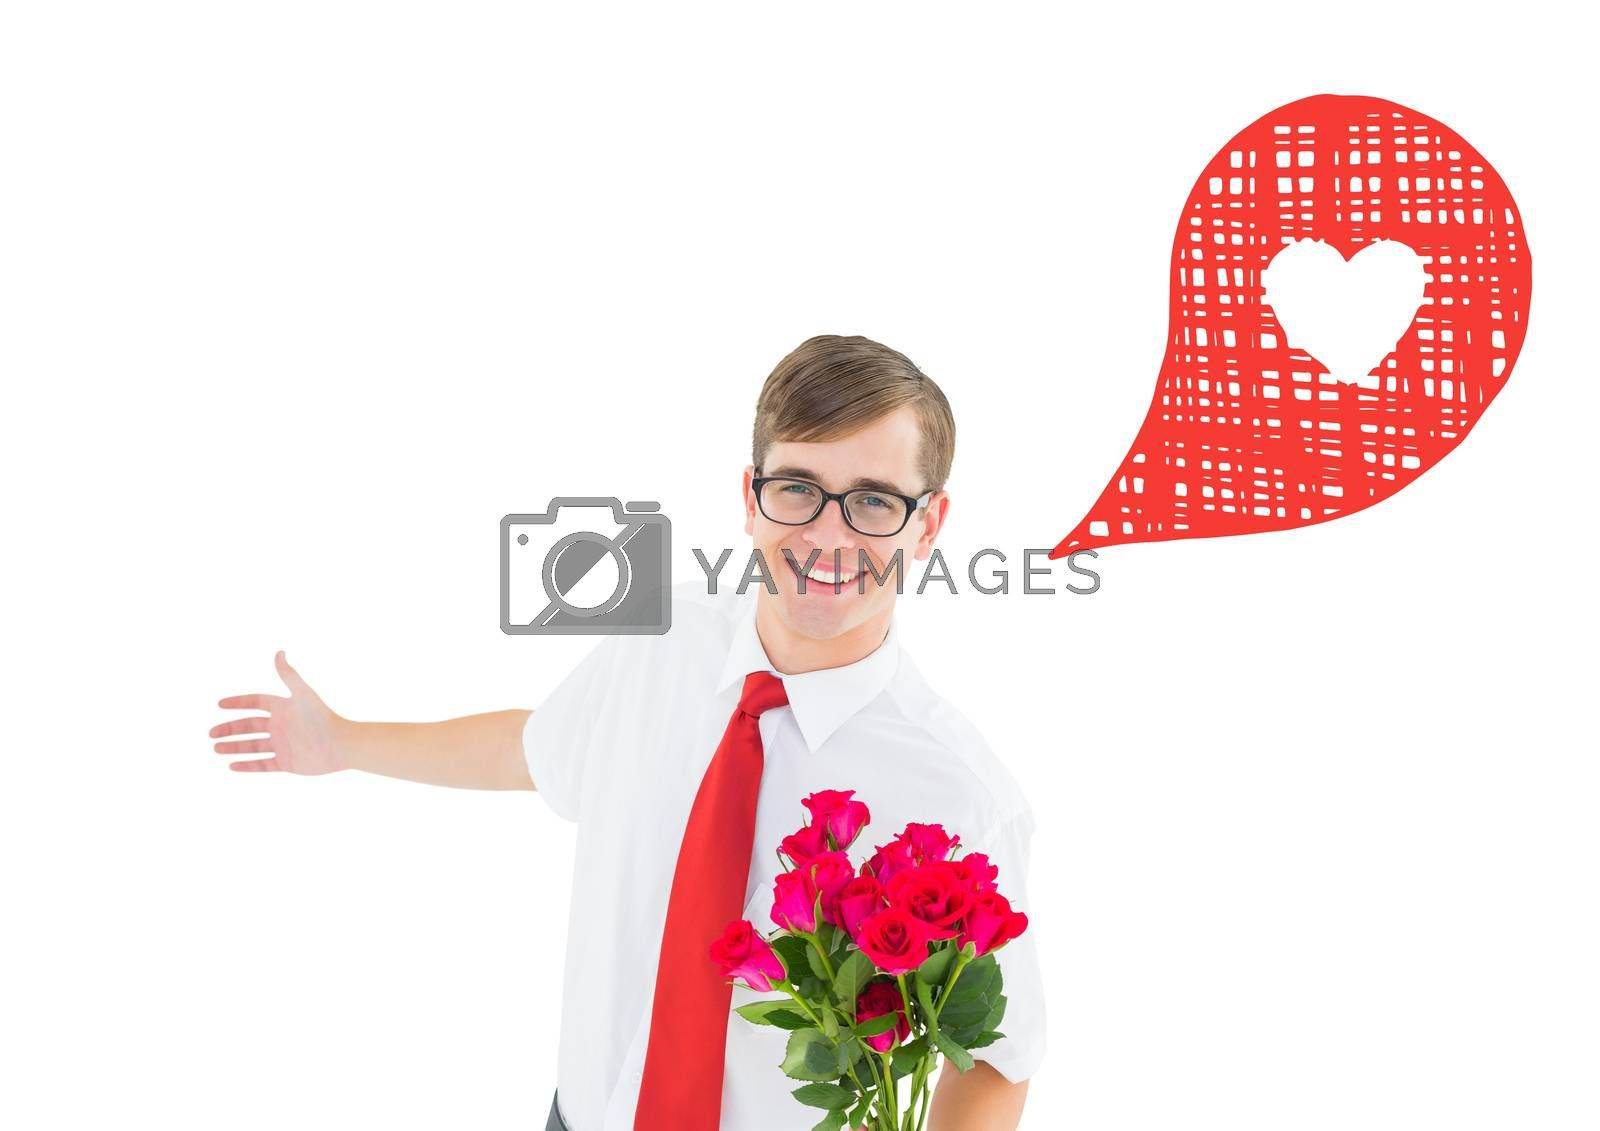 Romantic geeky hipster against heart in speech bubble